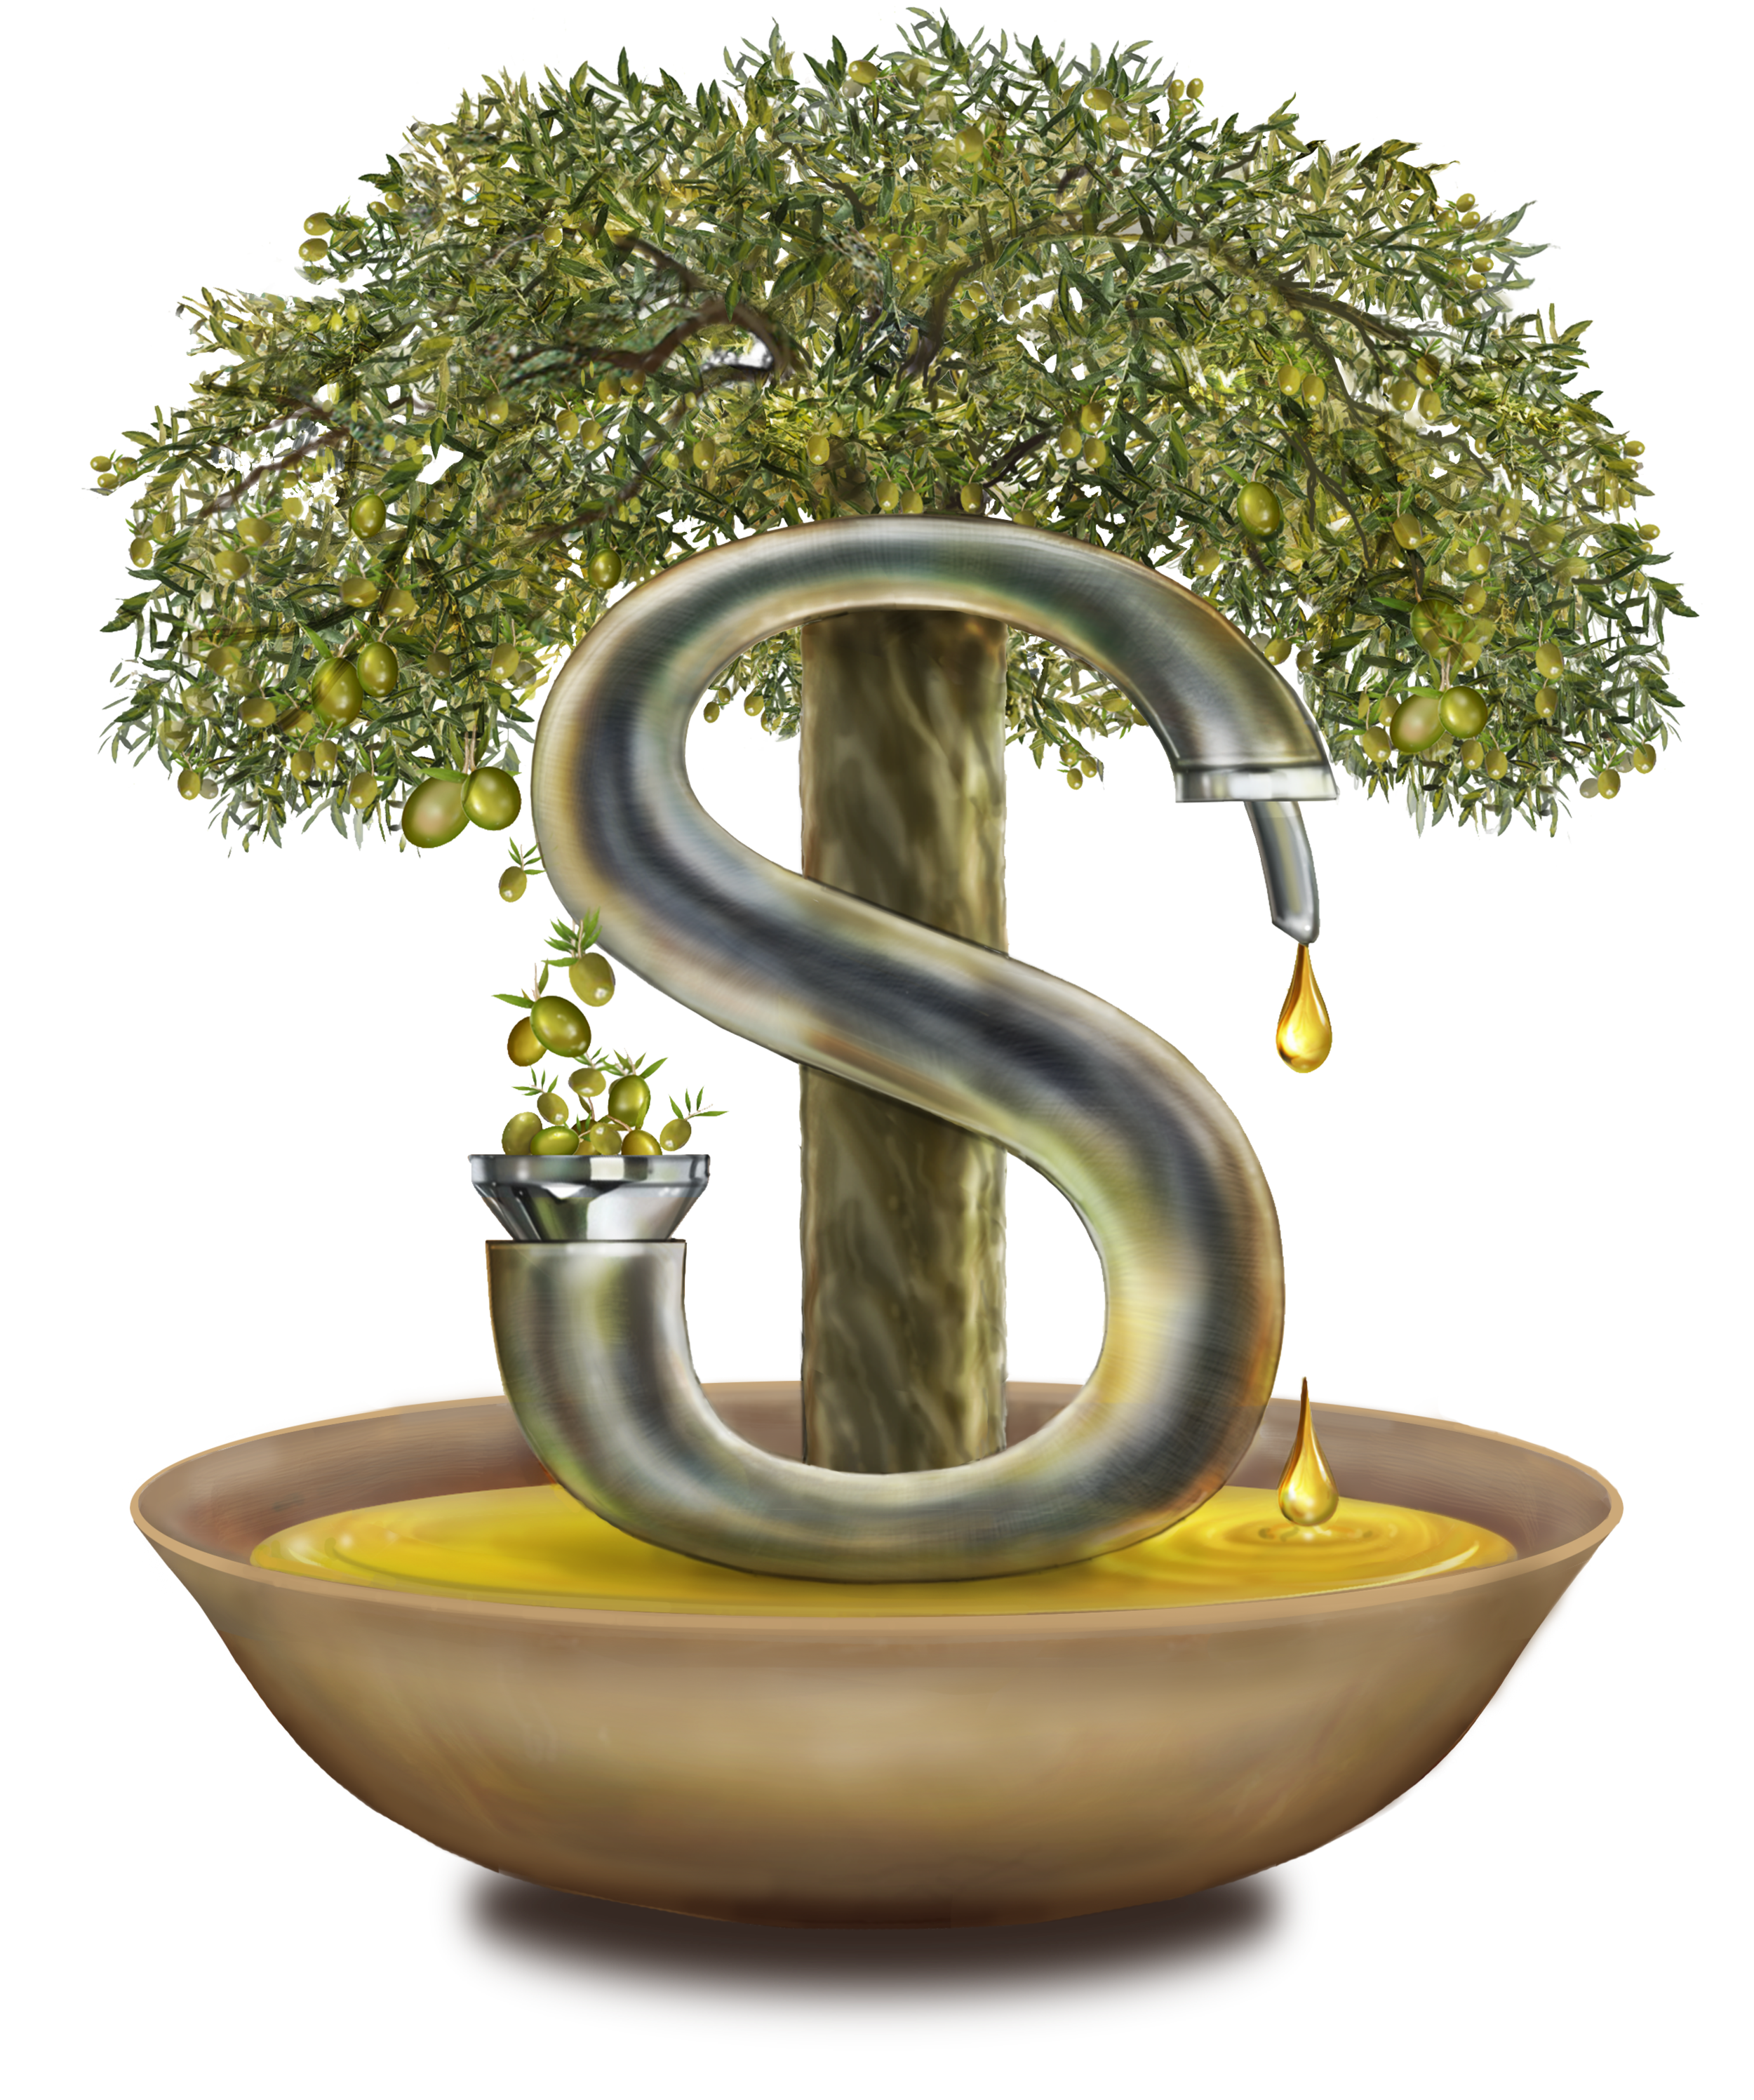 Spend Wisely on Olive Oil